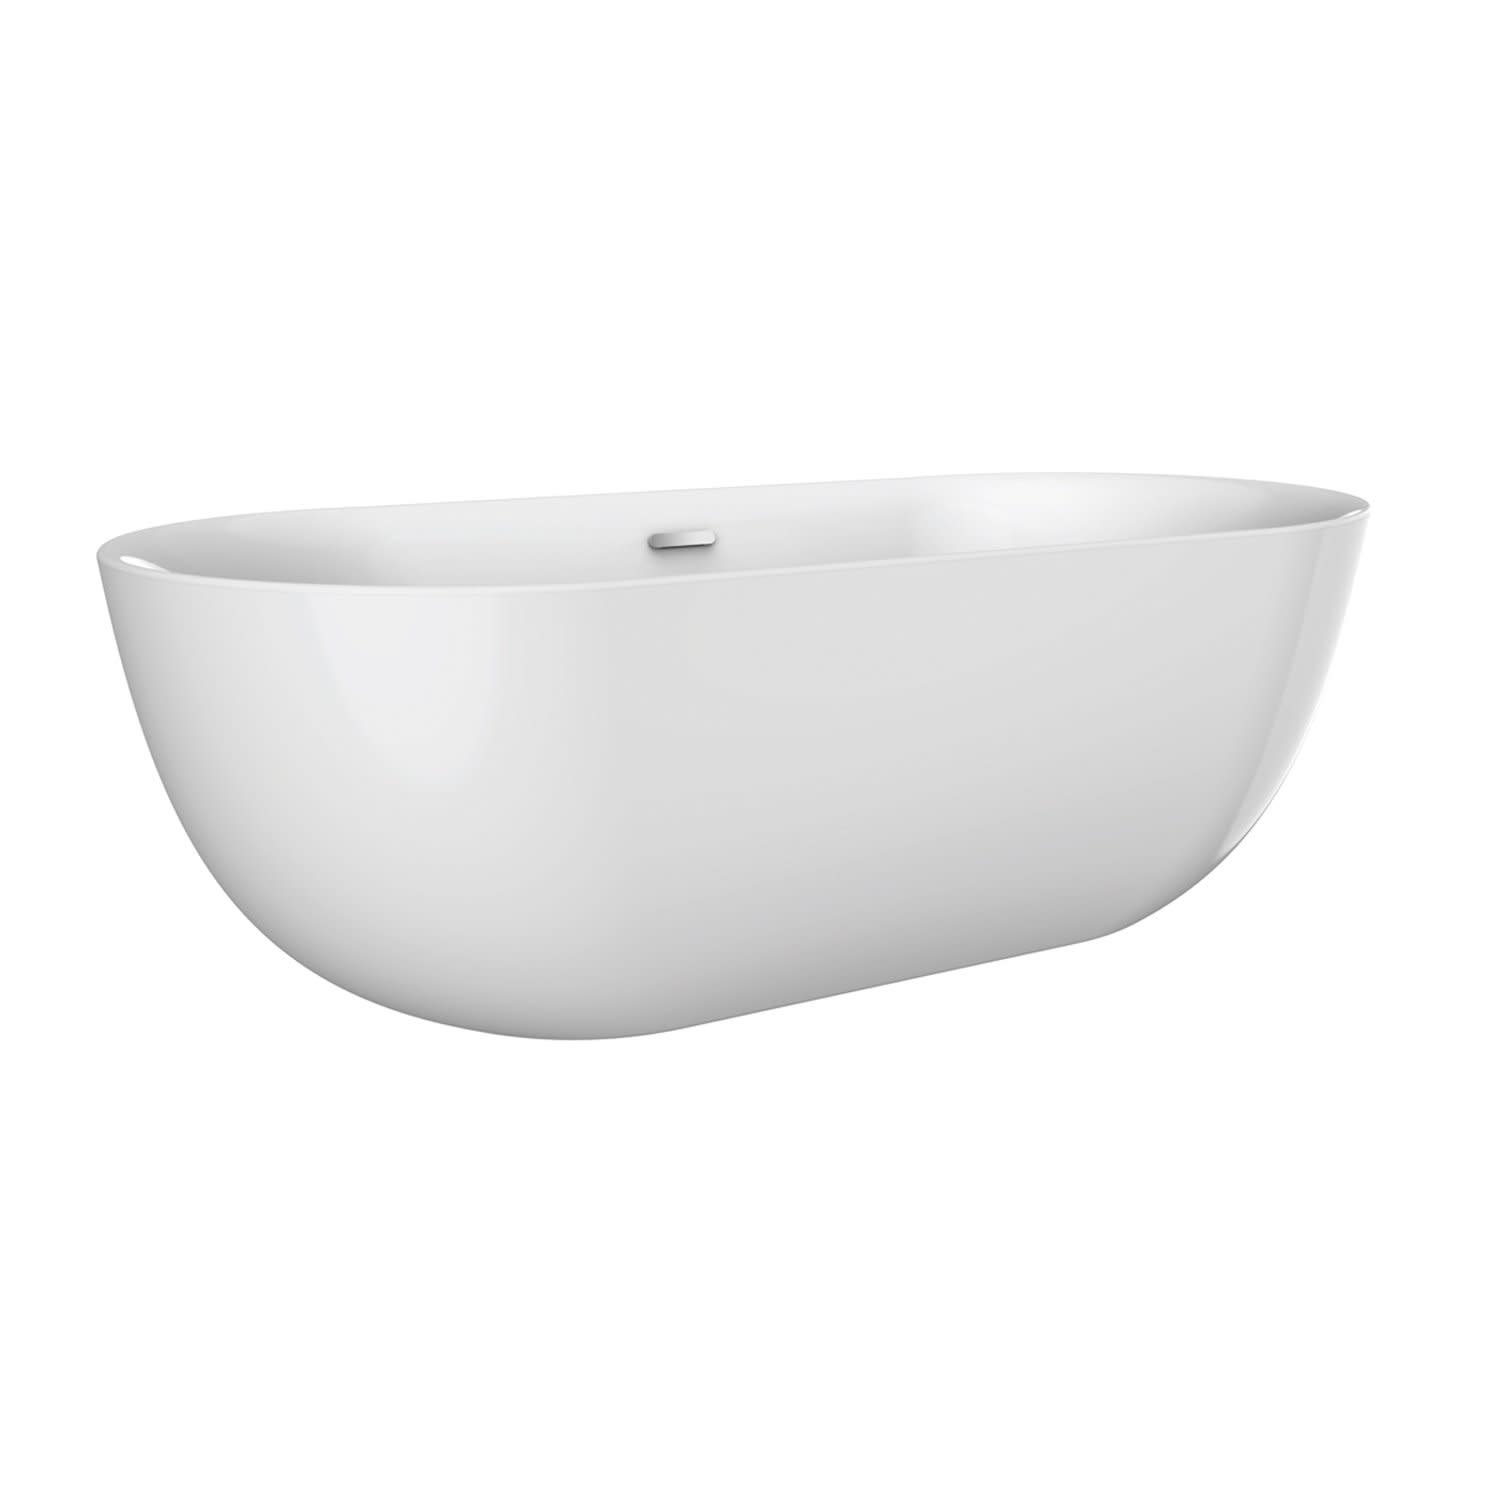 Barclay Atovn59kig Paige Freestanding Soaker Tub With Integral Drain Qualitybath Com